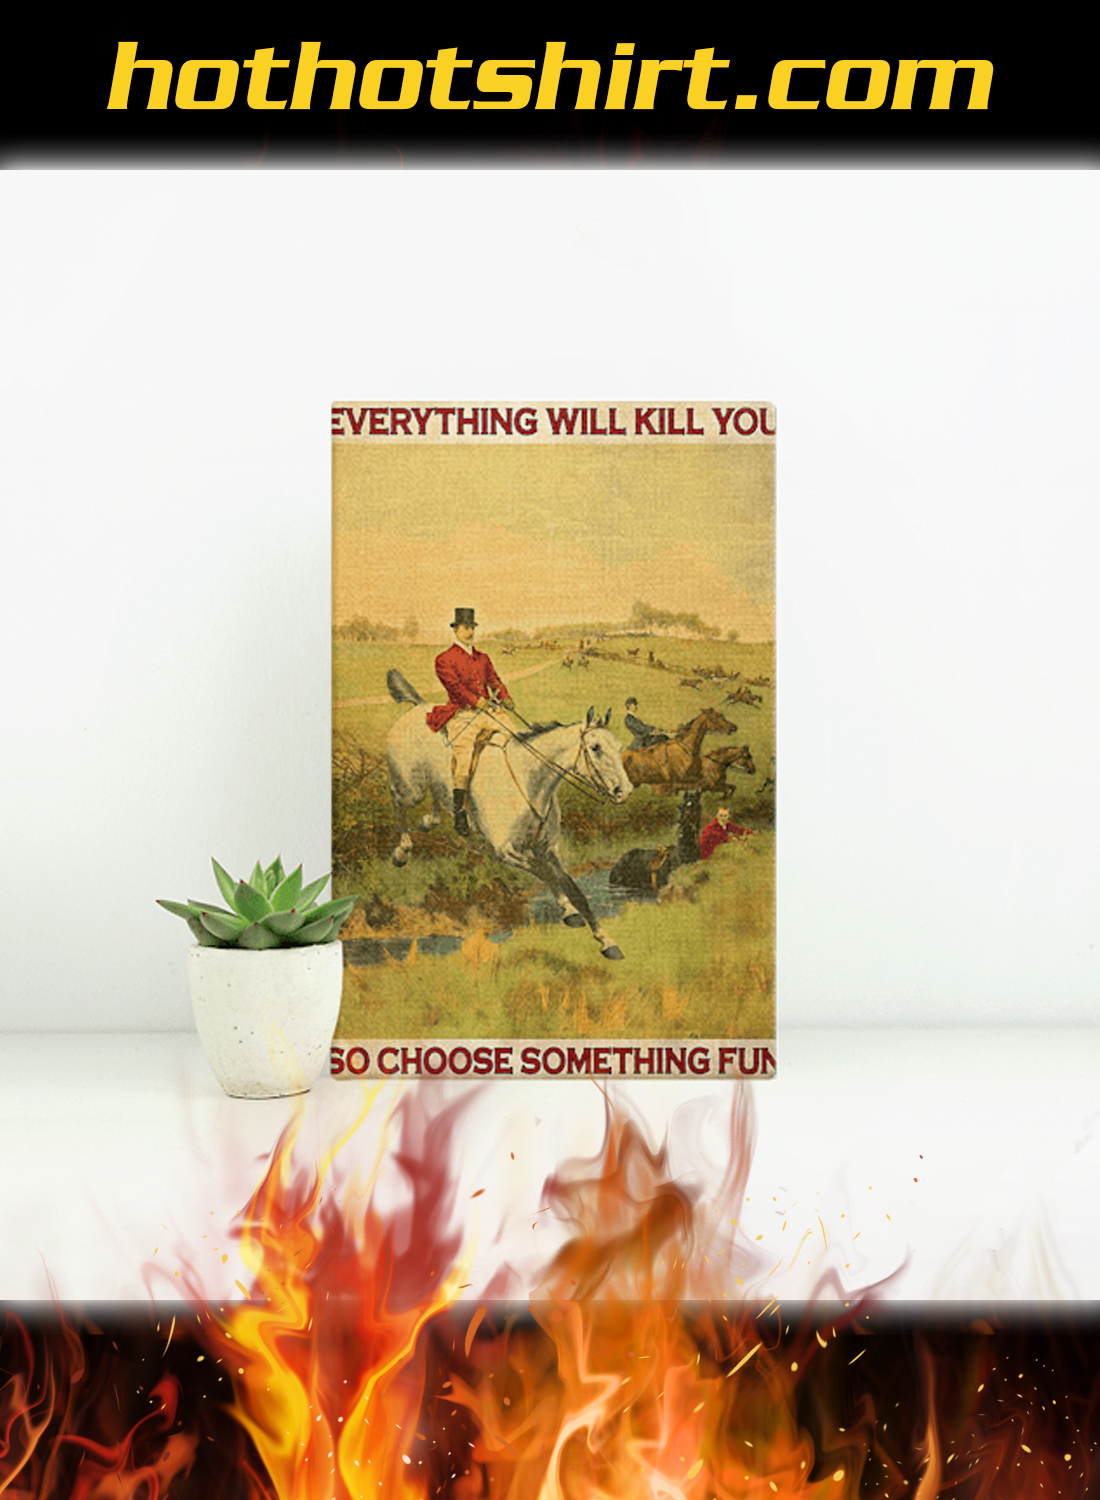 Fox hunting everything will kill you so choose something fun poster 1